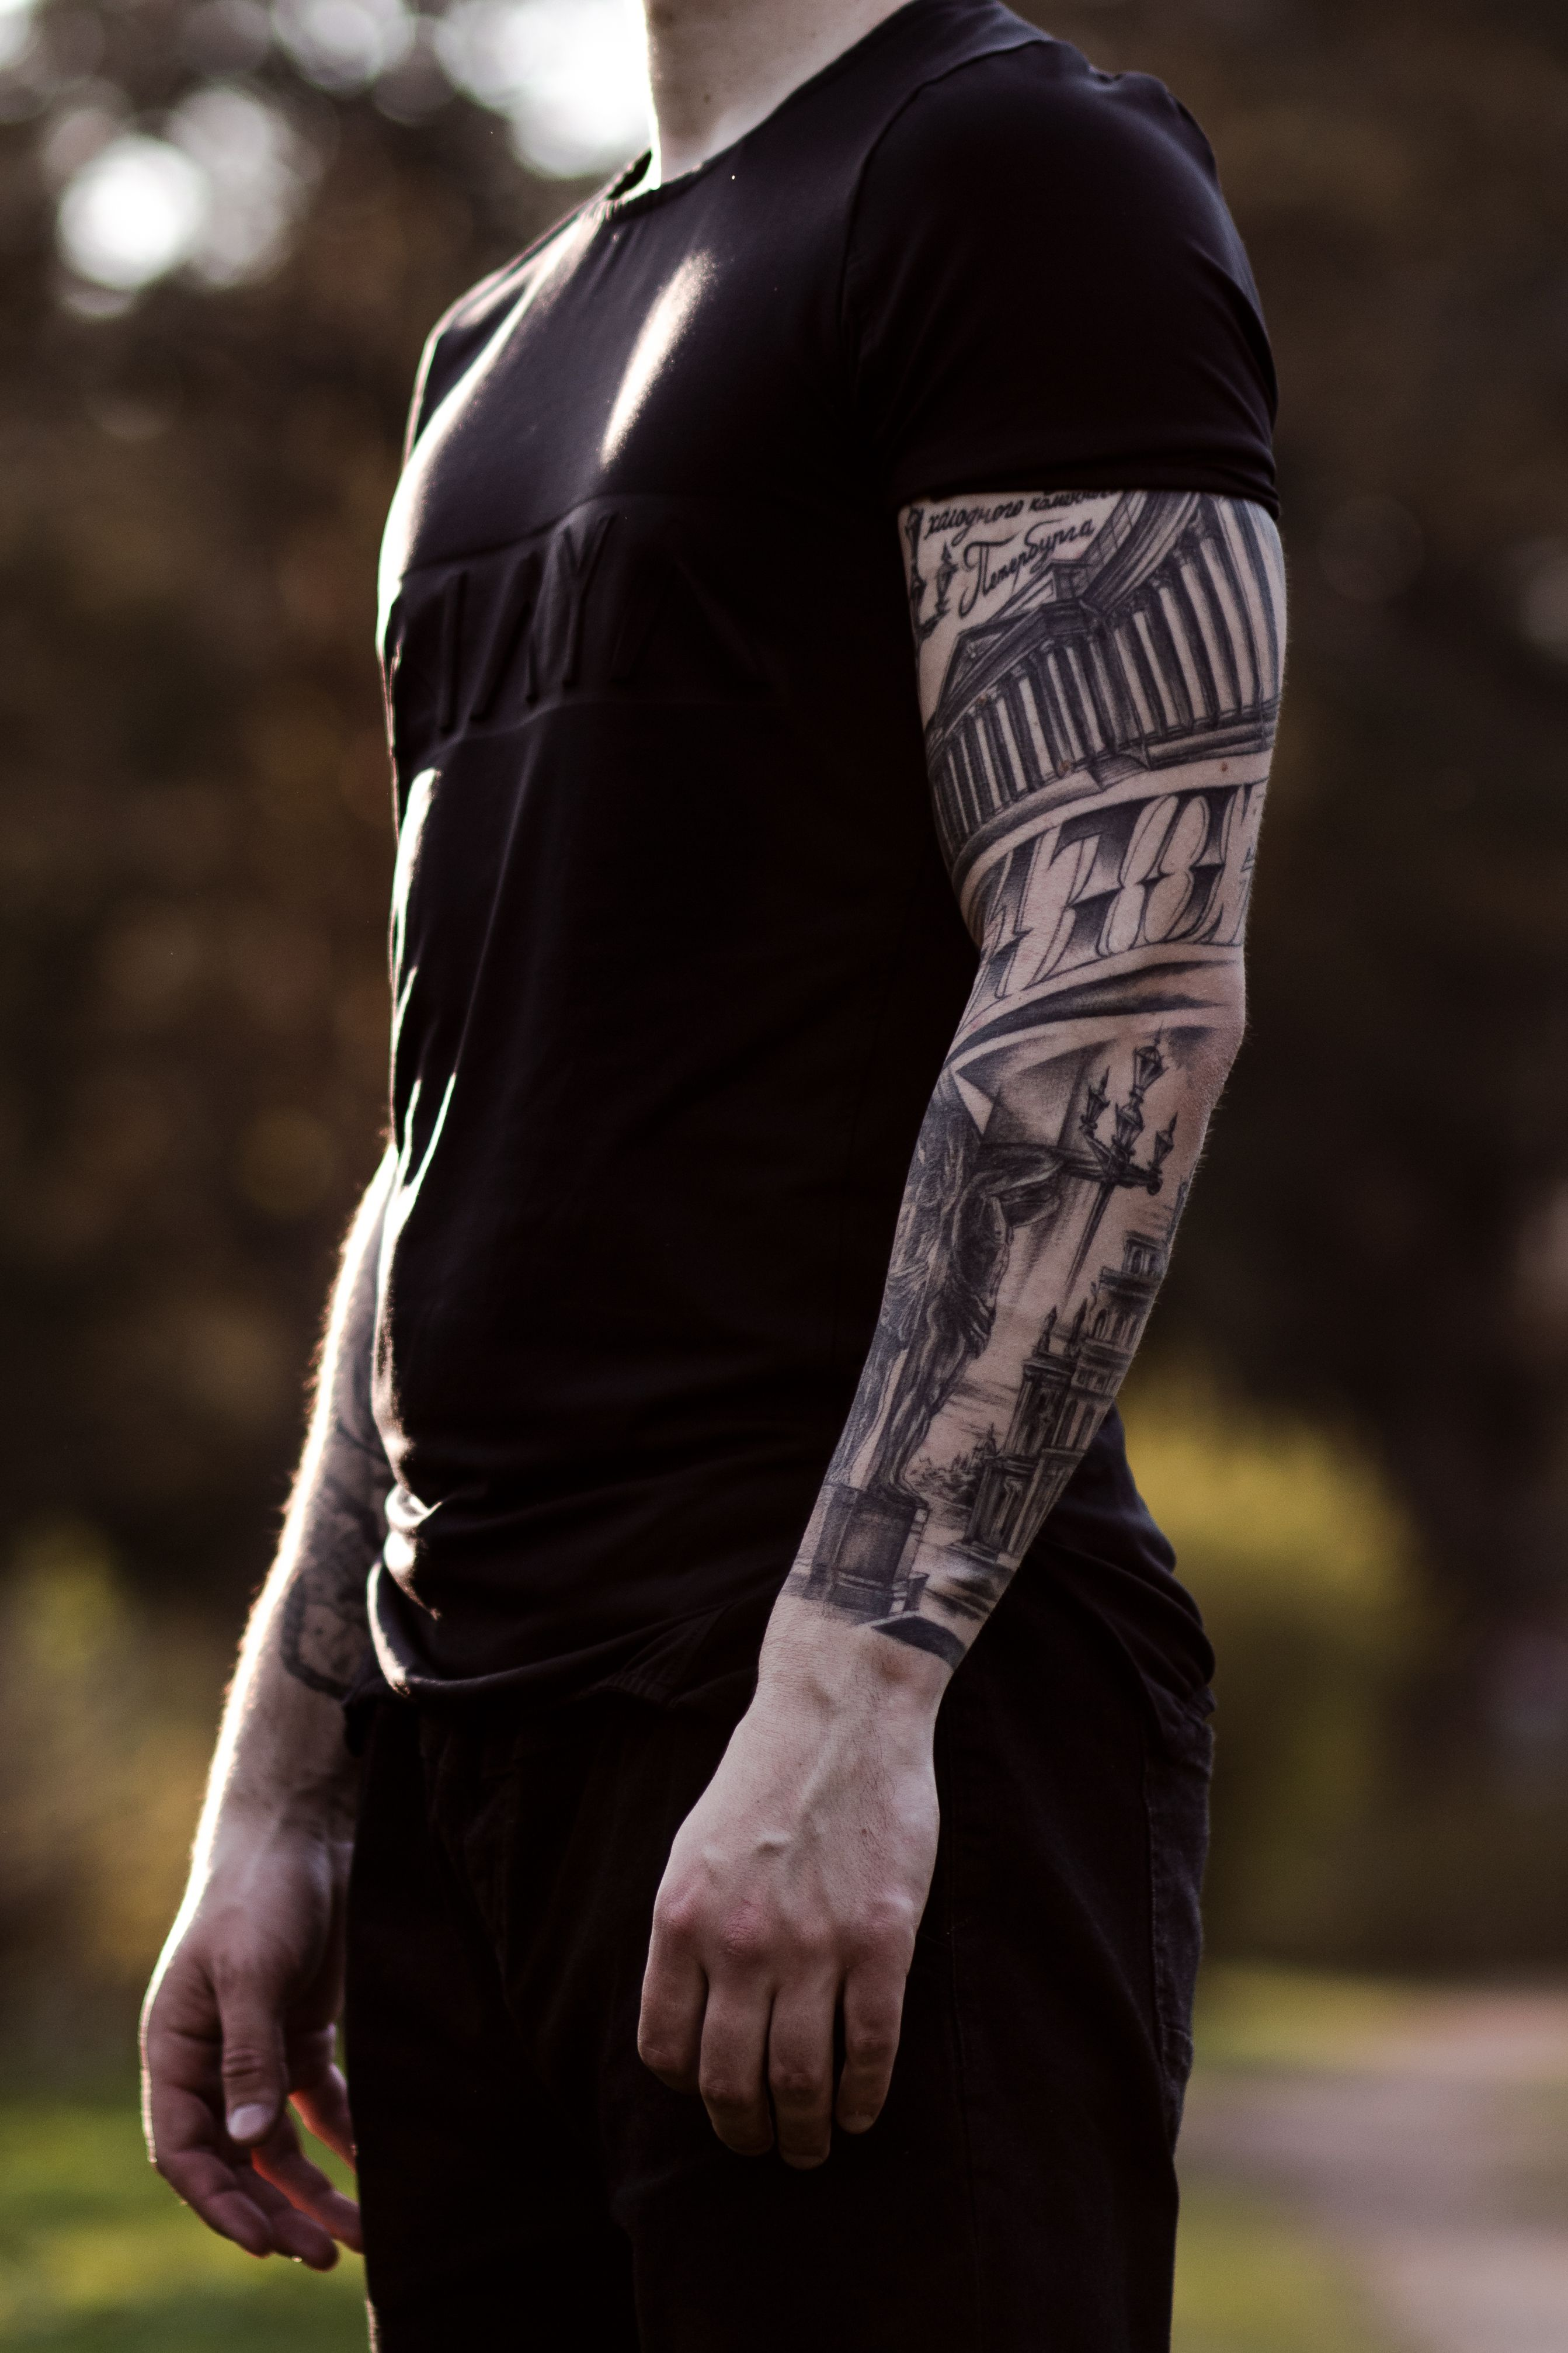 St Petersburg Architecture Tattoo 1703 Tattooed Sleeve Hand Arm Realism Style Chicano Russian City Ink Sleeve Tattoos Hand Tattoos Tattoo Designs Men